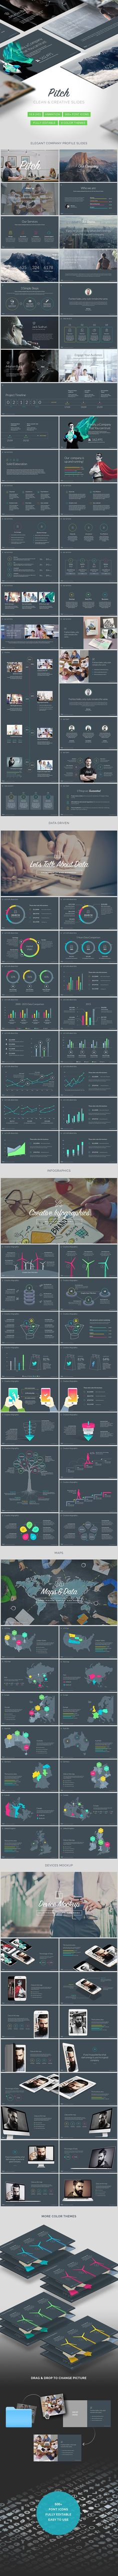 Business infographic & data visualisation Business infographic : Pitch Modern Keynote Template Keynote Templates Present... Infographic Description Busines